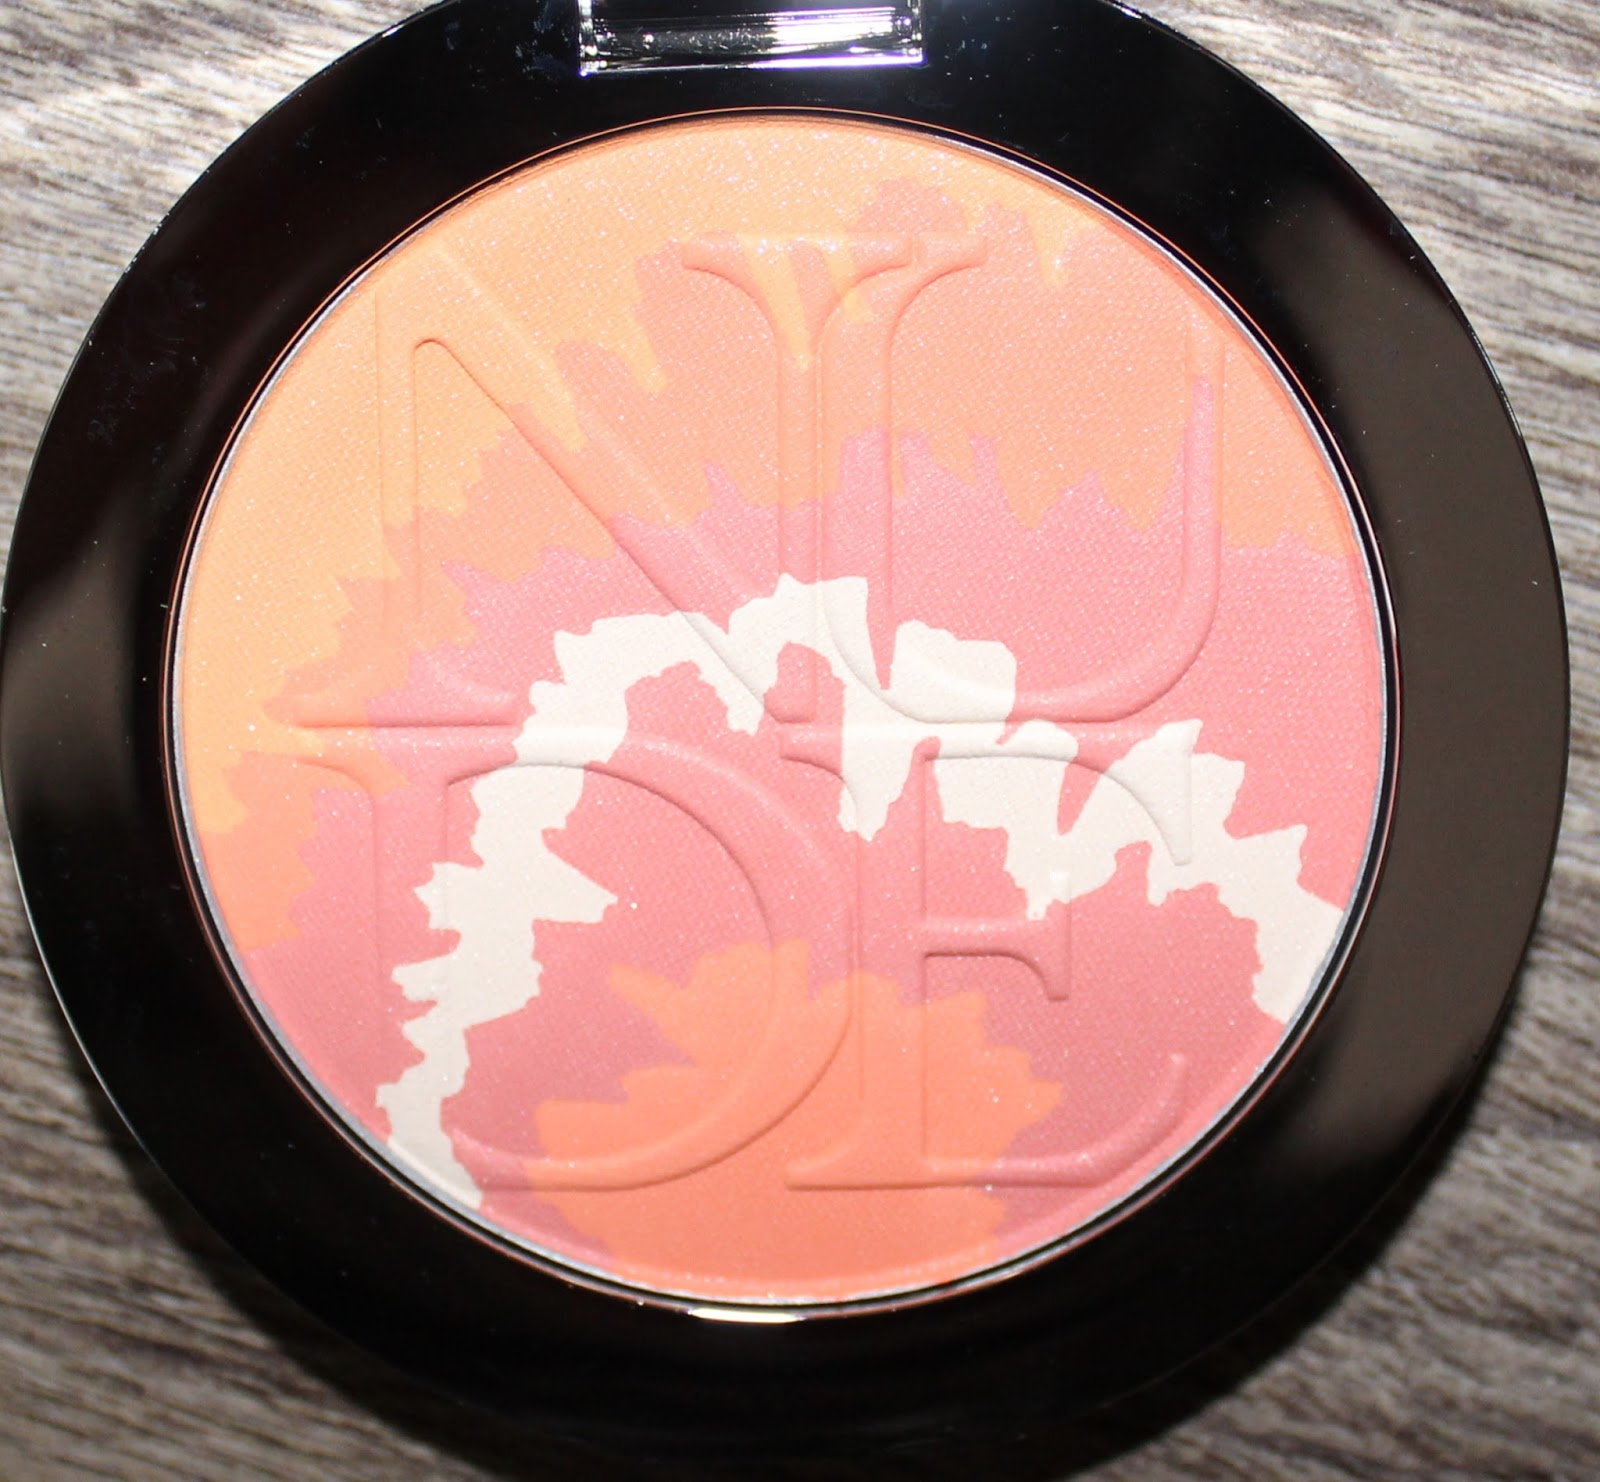 DiorSkin Nude Tan Tie Dye Edition Blush Harmony in Coral Sunset